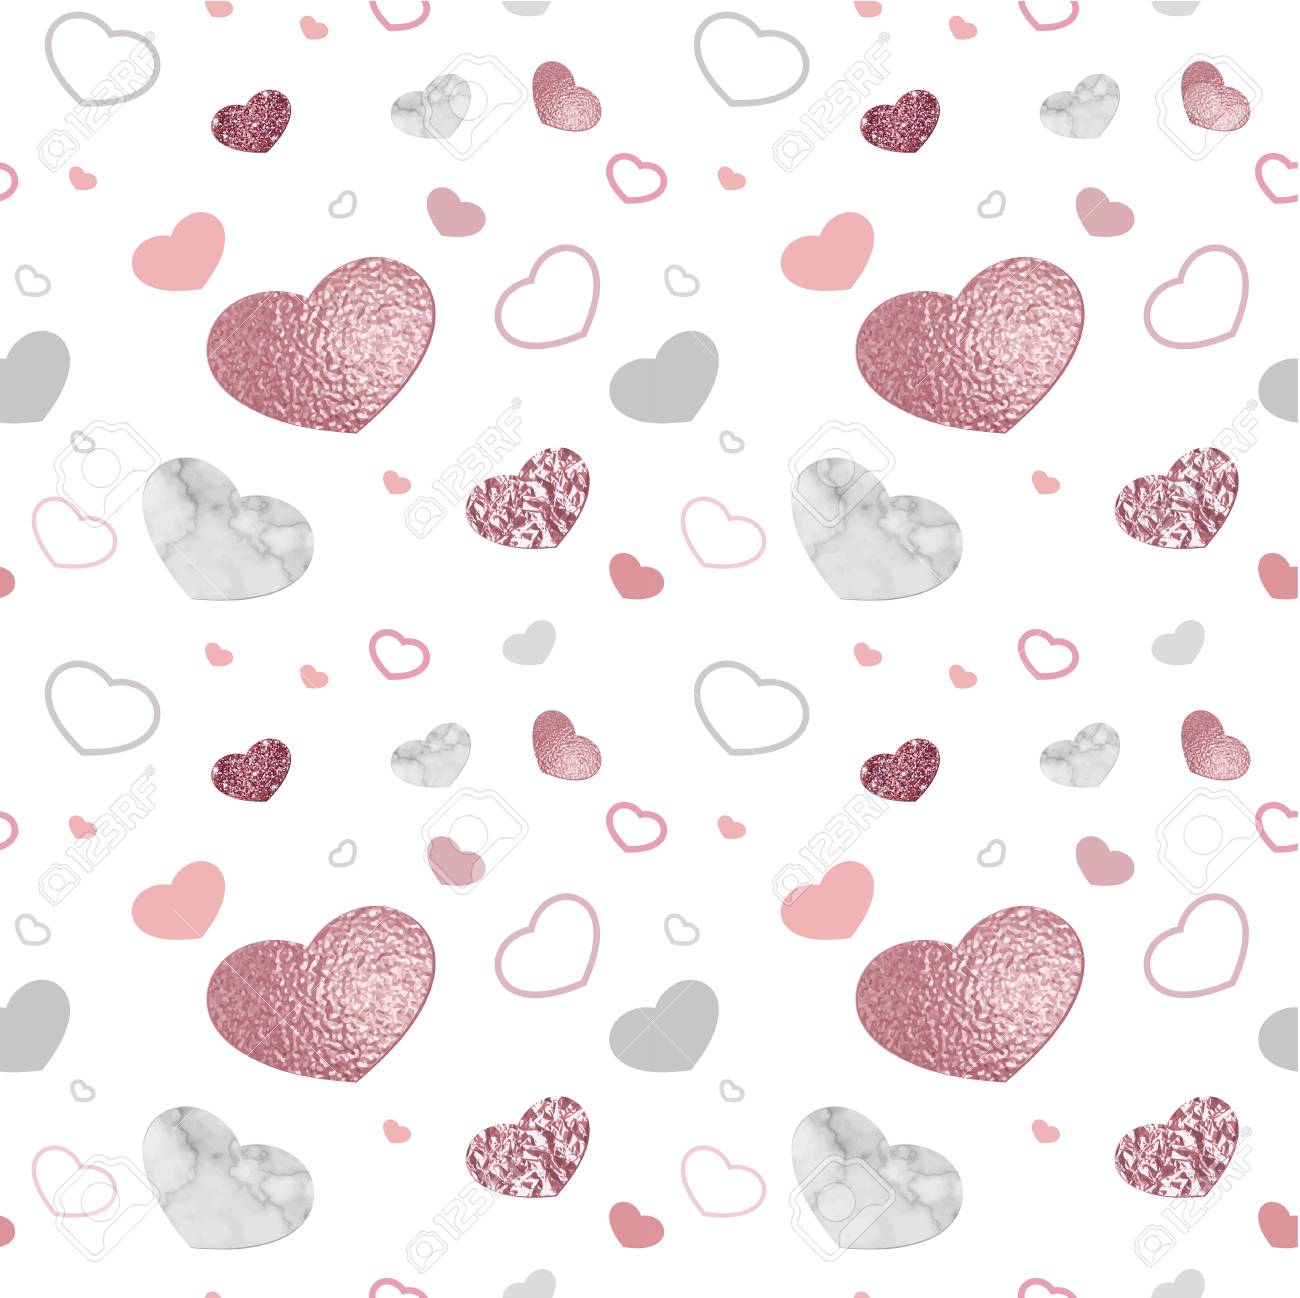 Top Wallpaper Marble Heart - 91670811-marble-gold-rose-seamless-pattern-for-geometric-poster-repeat-background-in-trendy-minimalist-style-  Pictures_571110.jpg